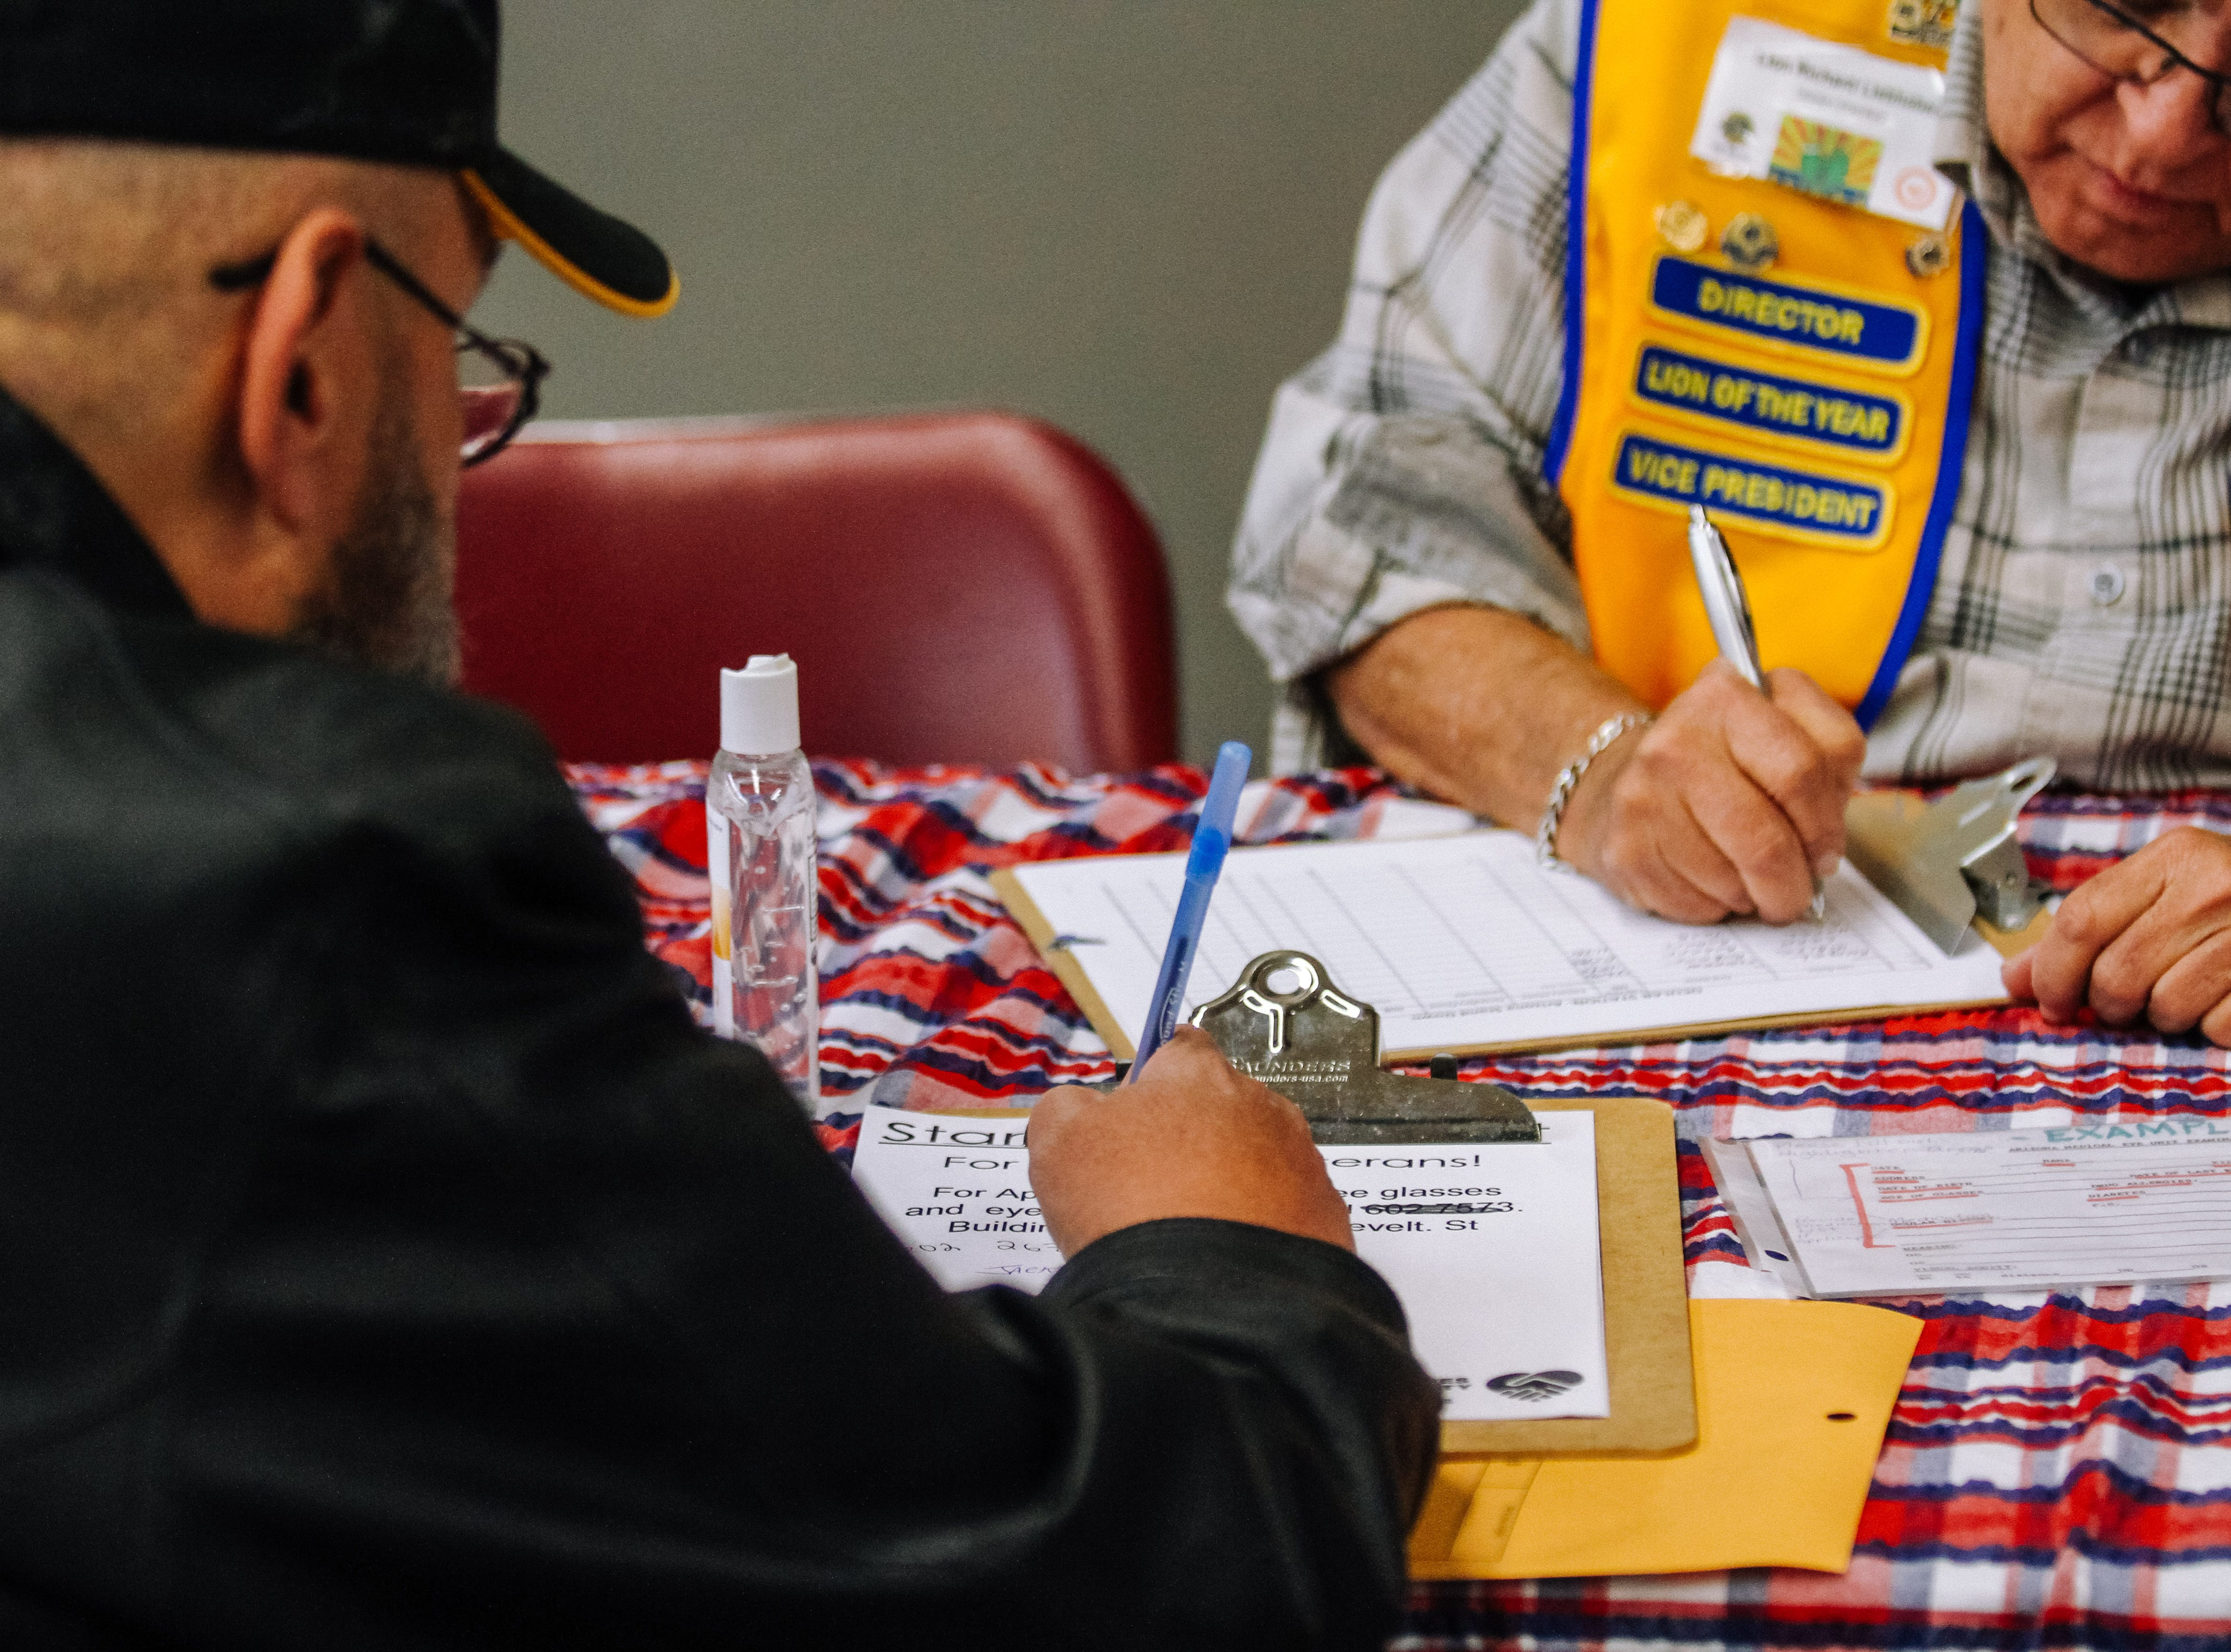 Army veteran Jack Rynes Jr. fills out forms to apply for glasses at the 2019 Veterans StandDown at the Arizona State Fairgrounds in Phoenix on Jan. 25, 2019.